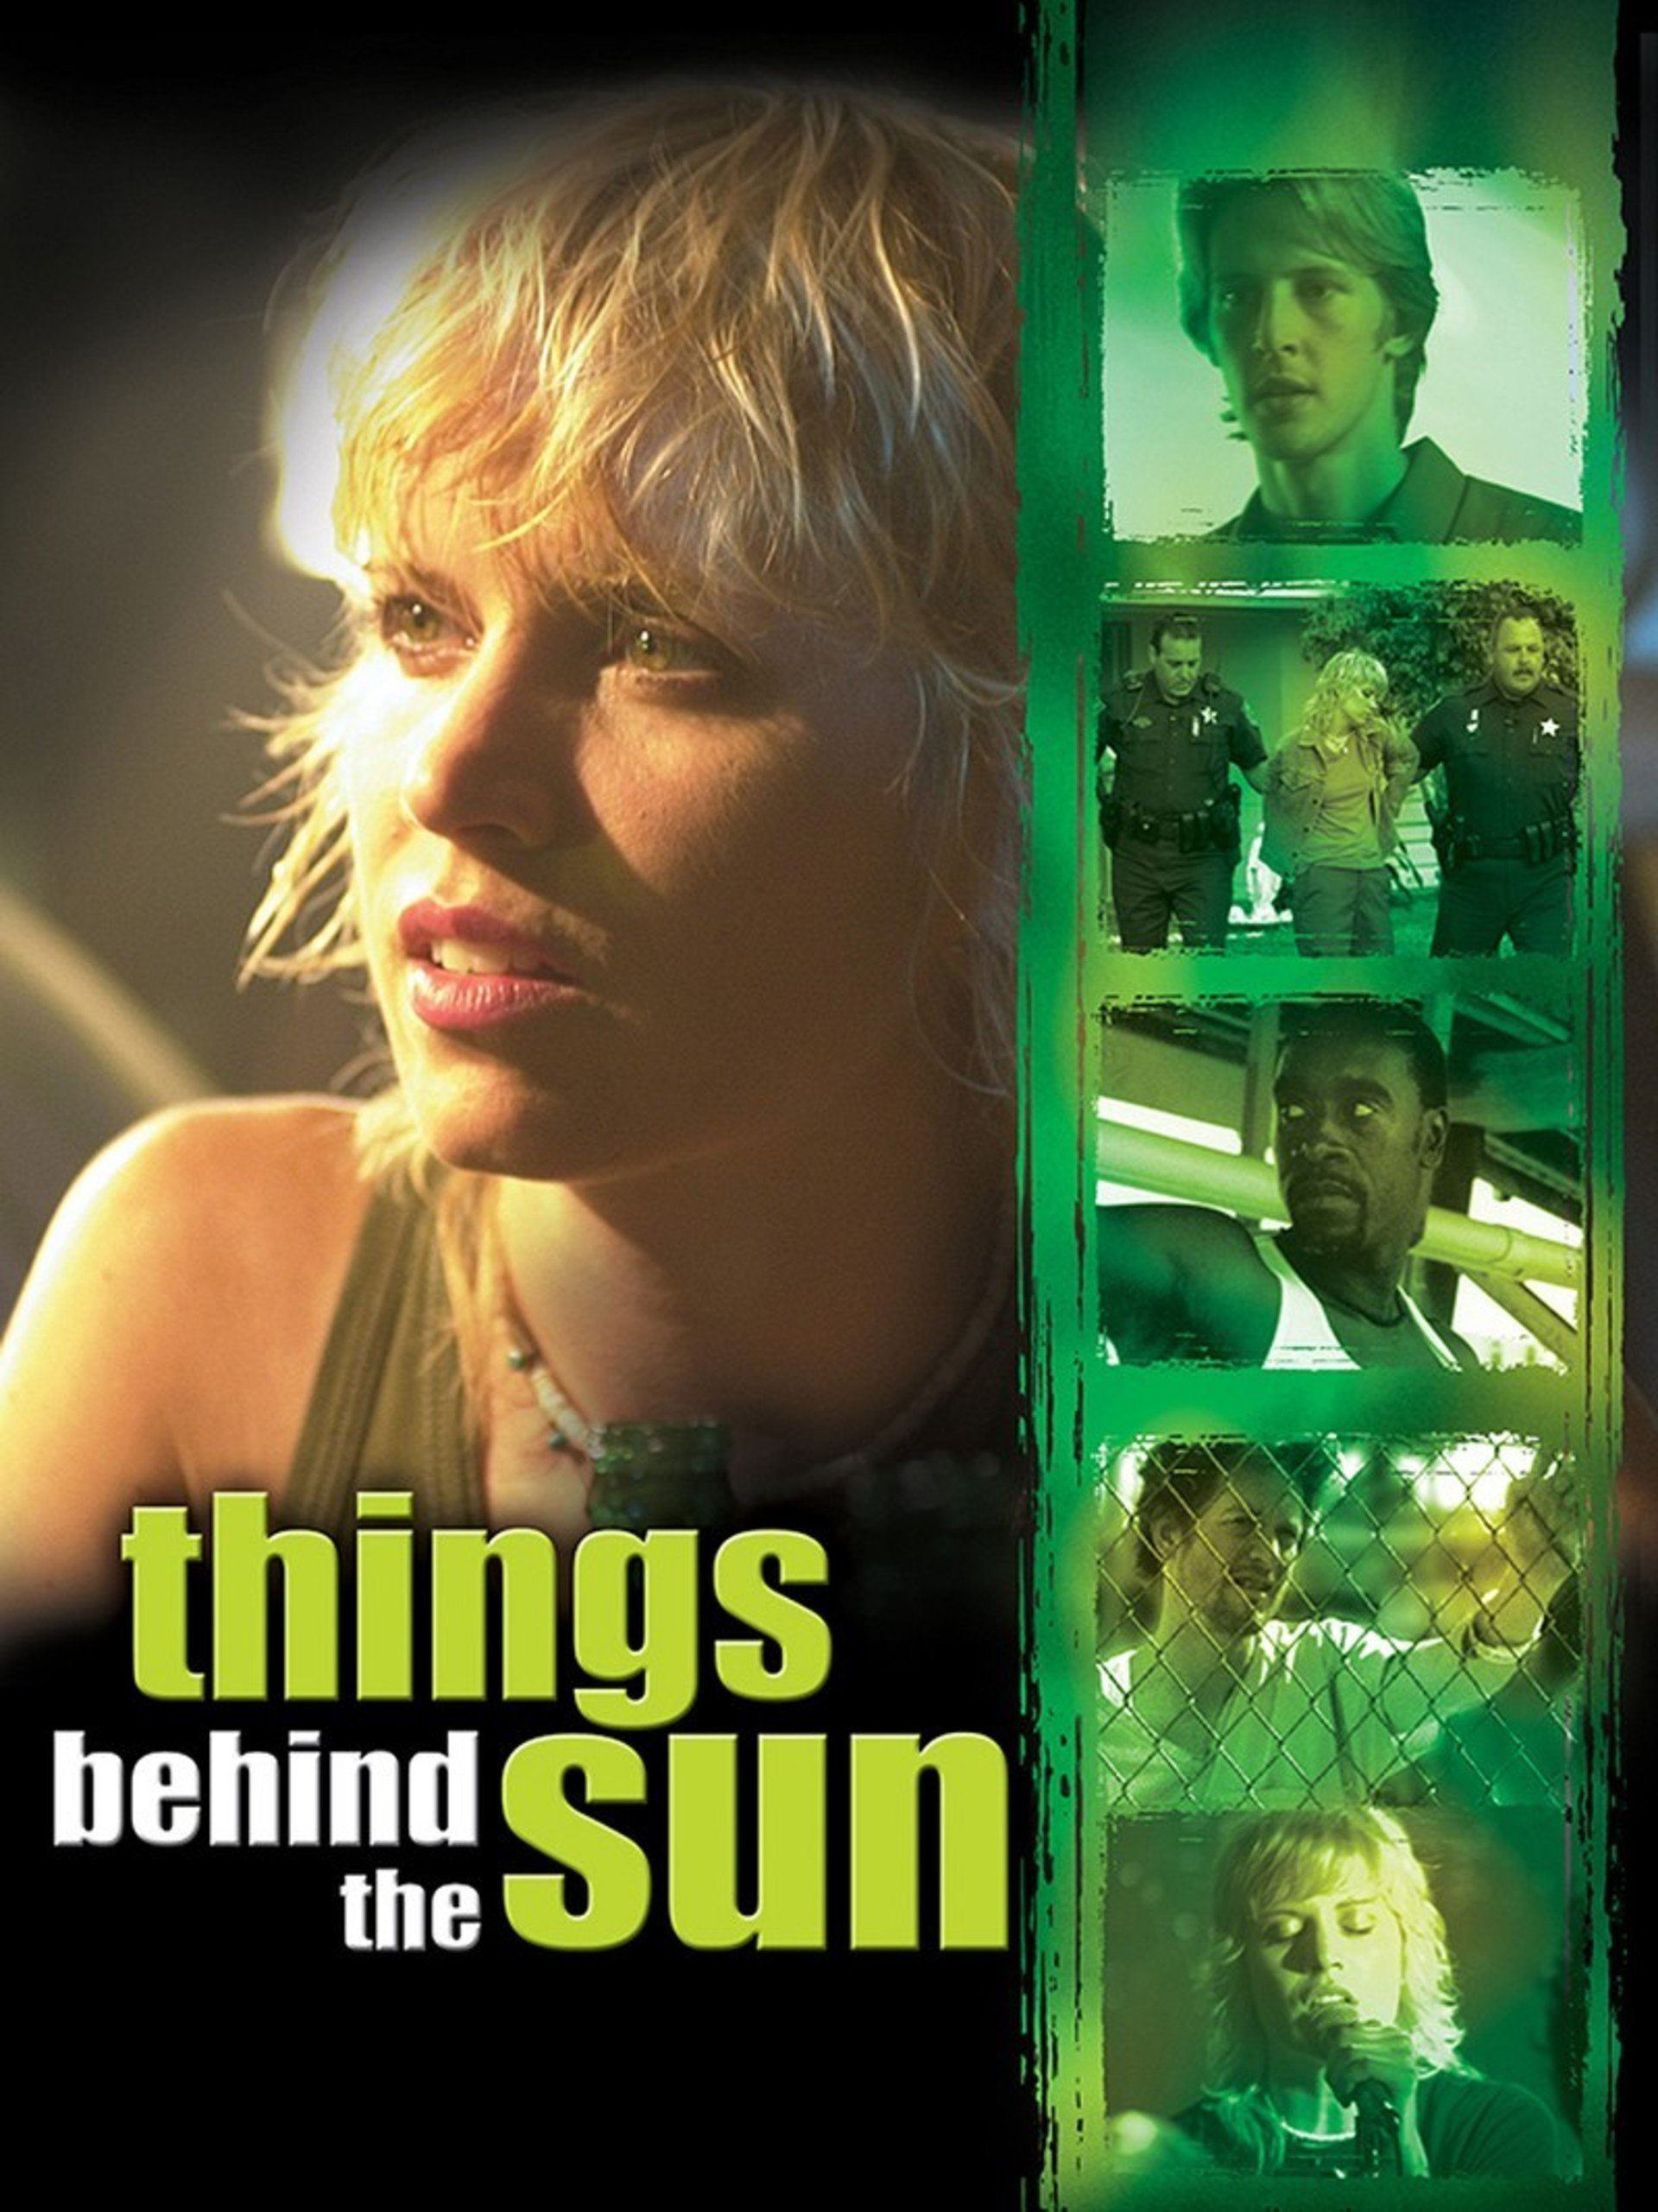 Anapus saulės (2001) / Things Behind the Sun